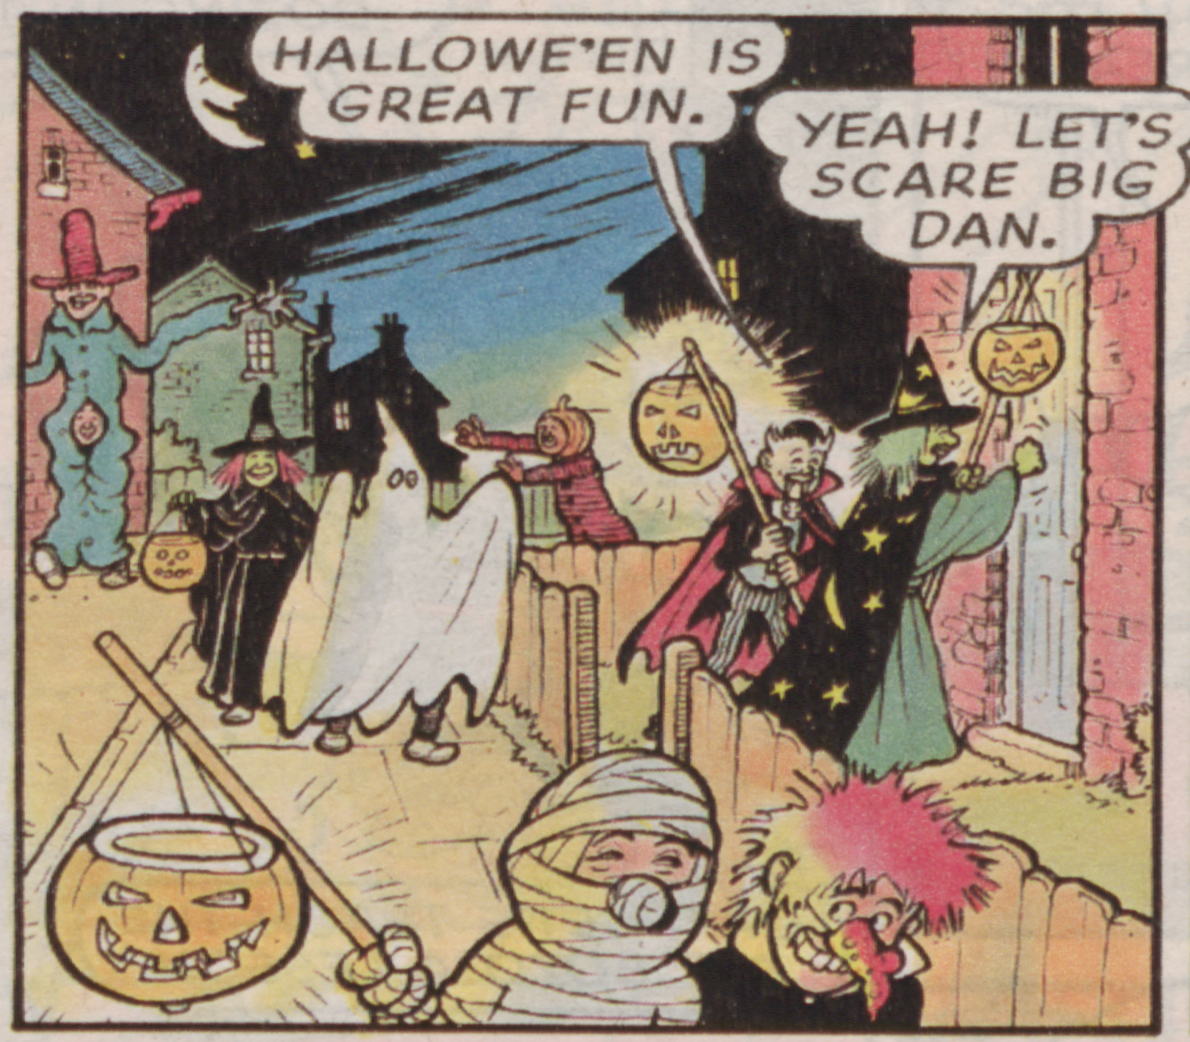 It's Halloween at Dan's place